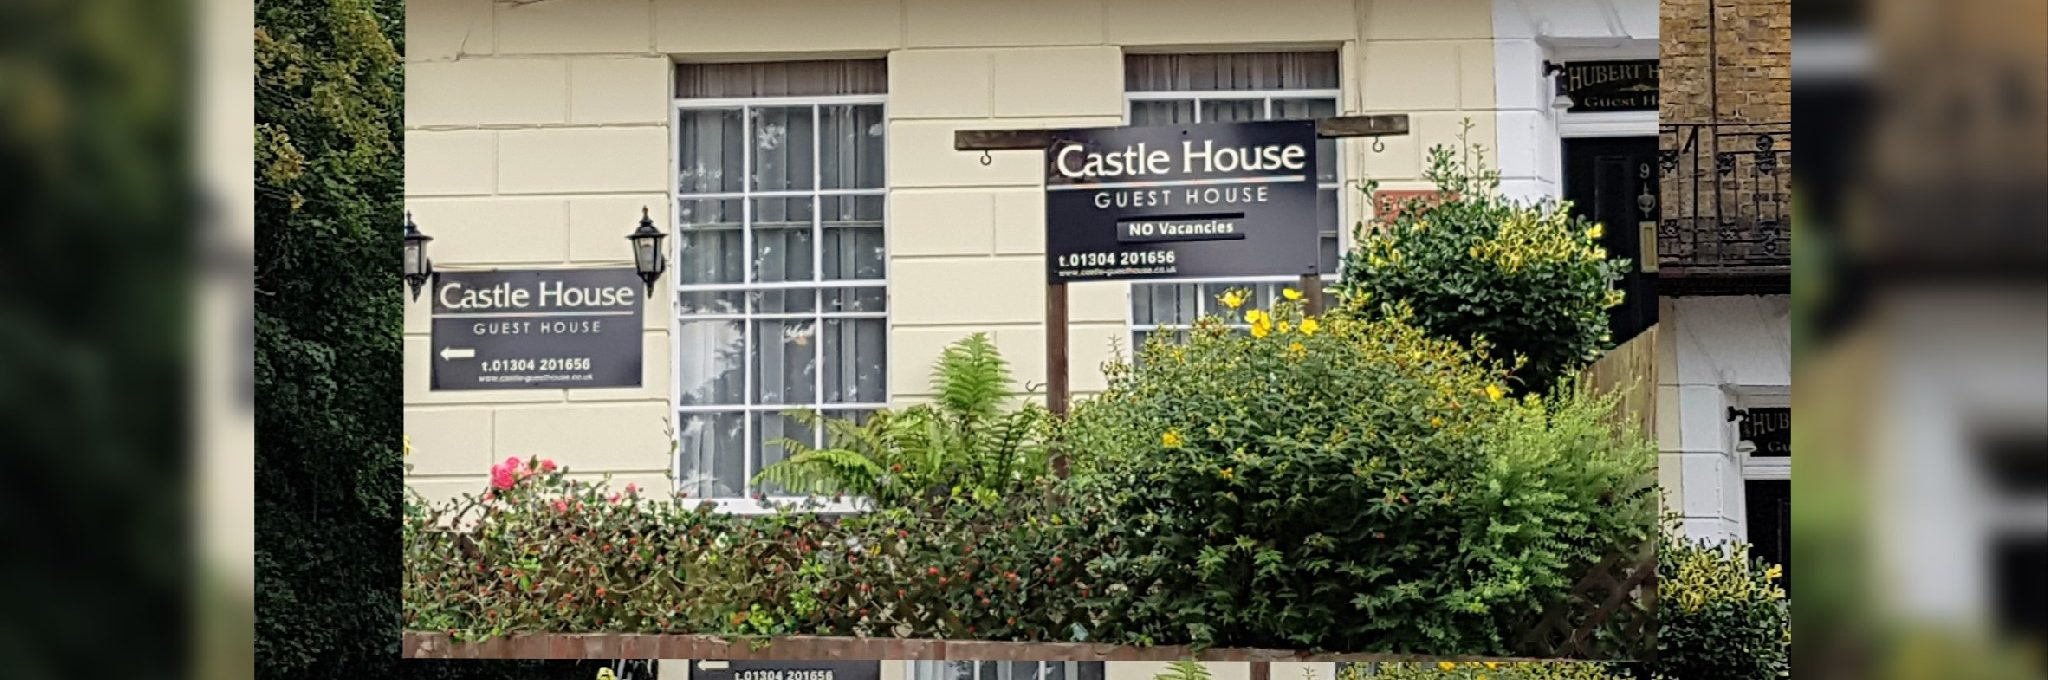 Castle House Guesthouse